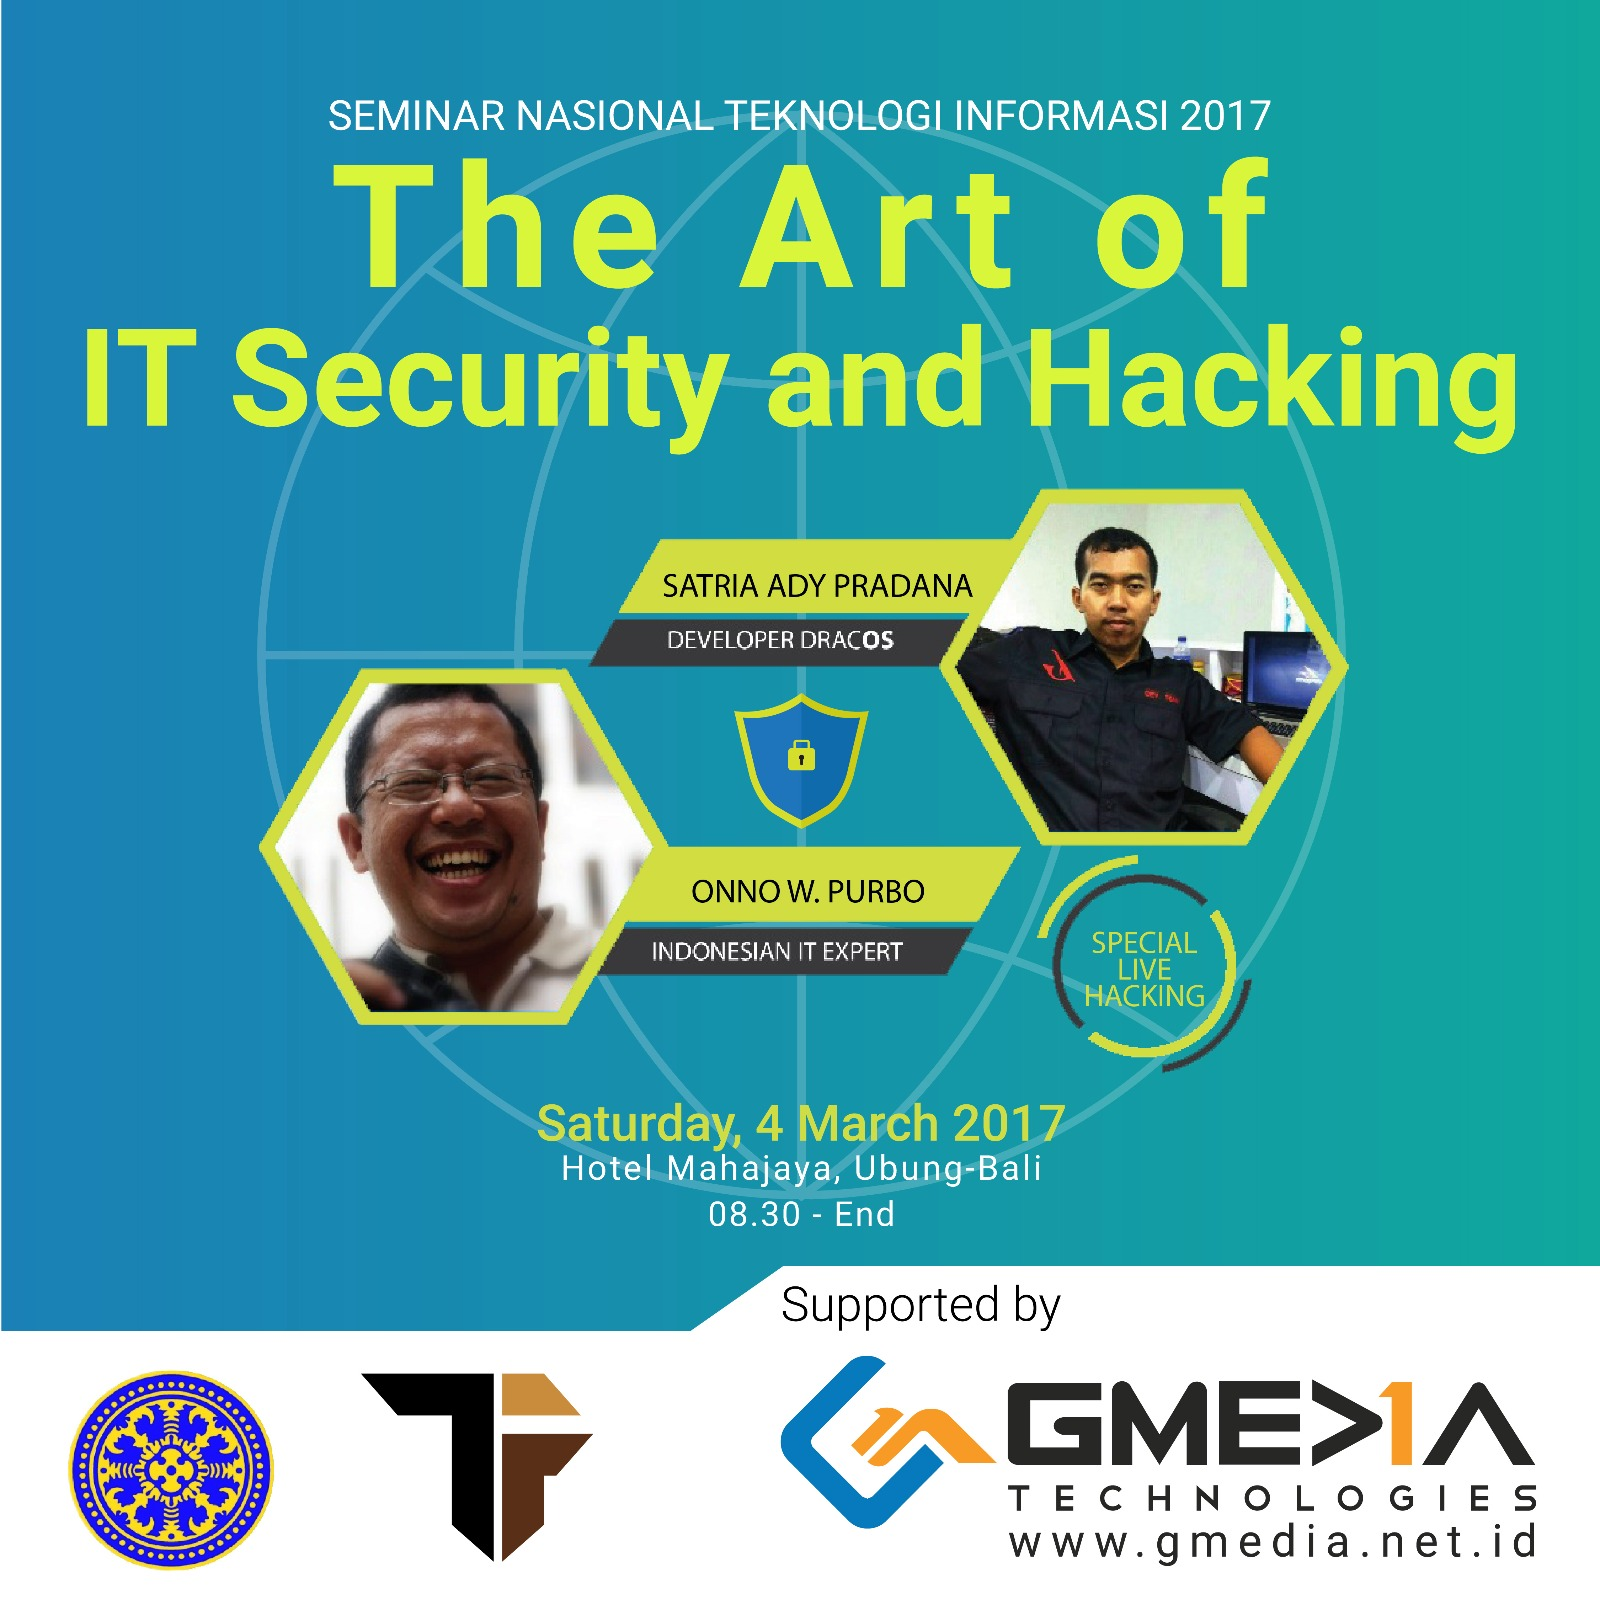 Semnas TI 2017 The Art of IT Security and Hacking